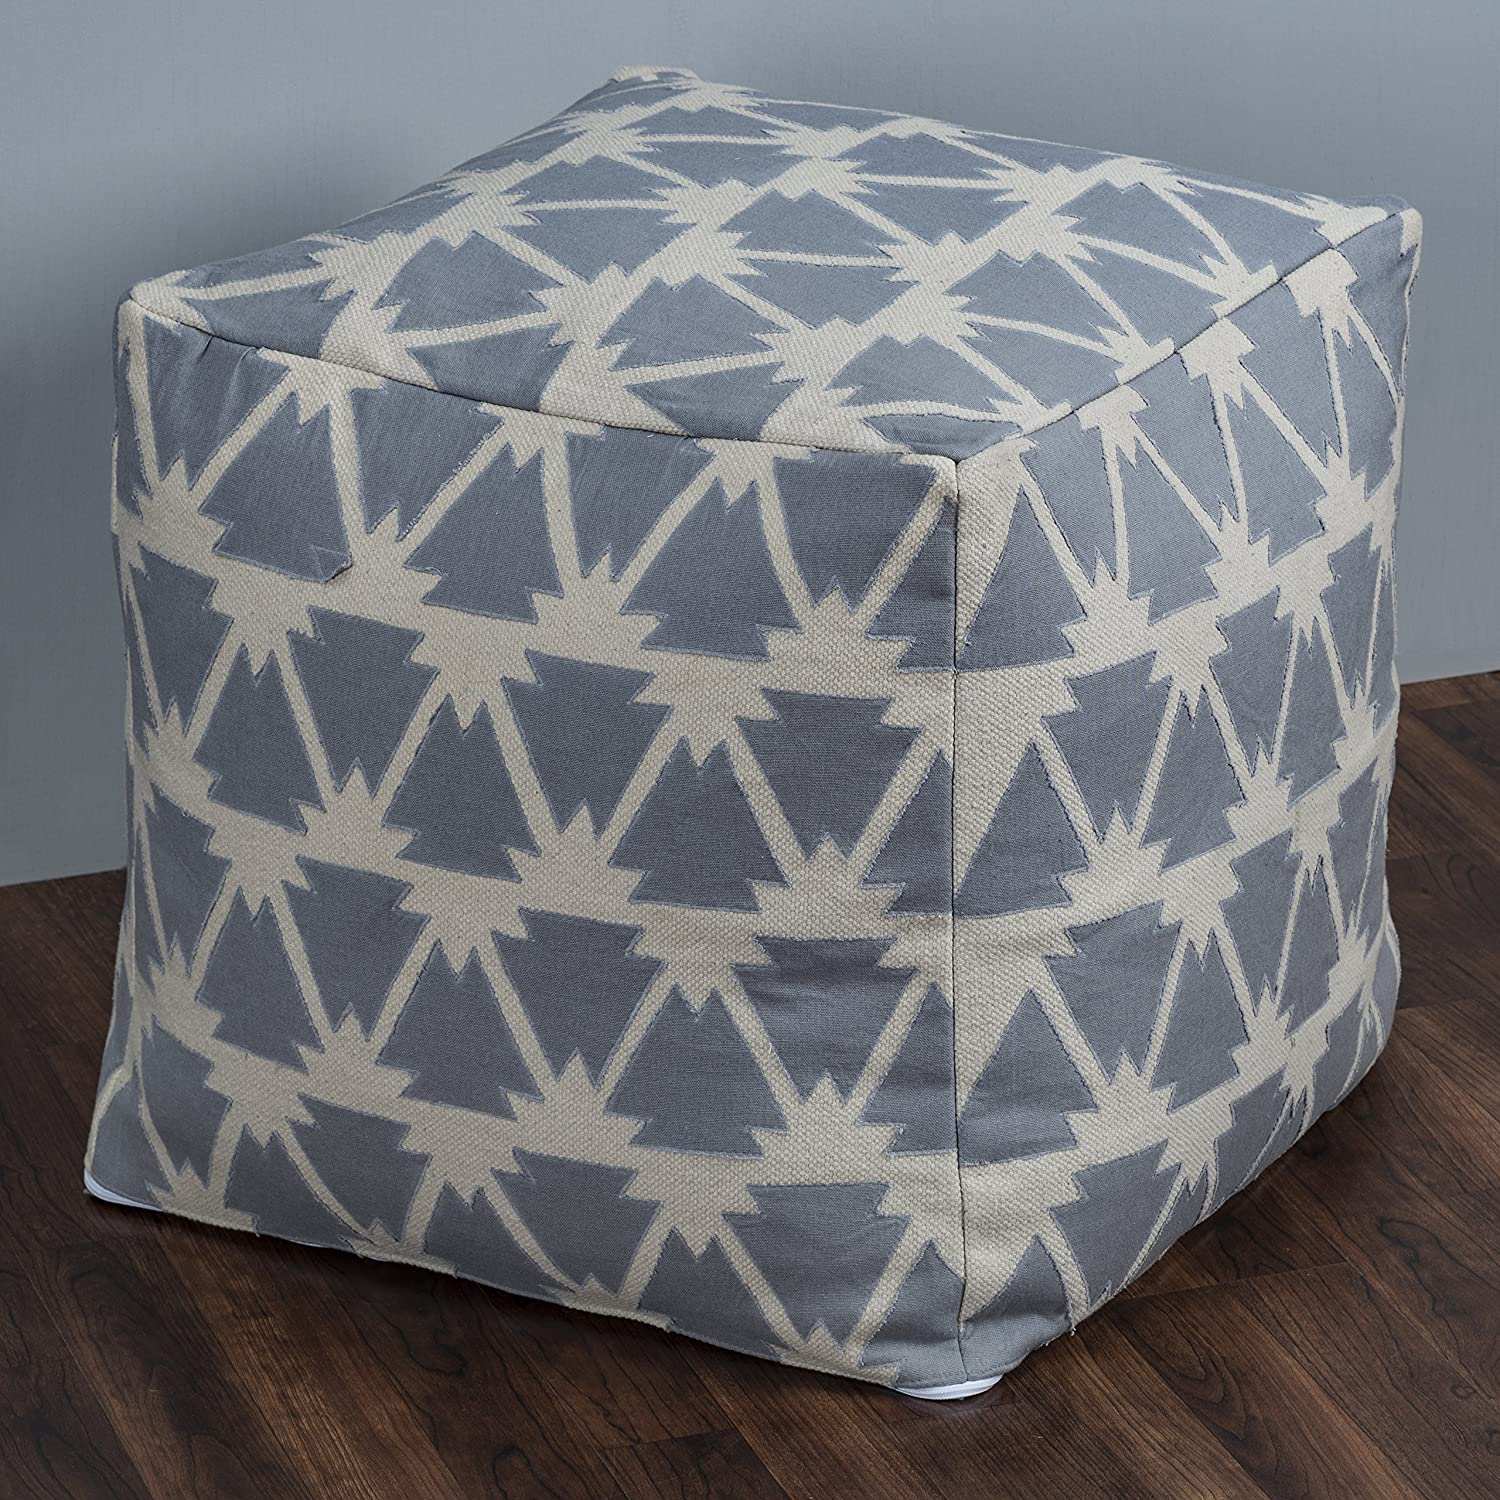 Rizzy Home P10383 Pouf Natural unisex Al sold out. 20